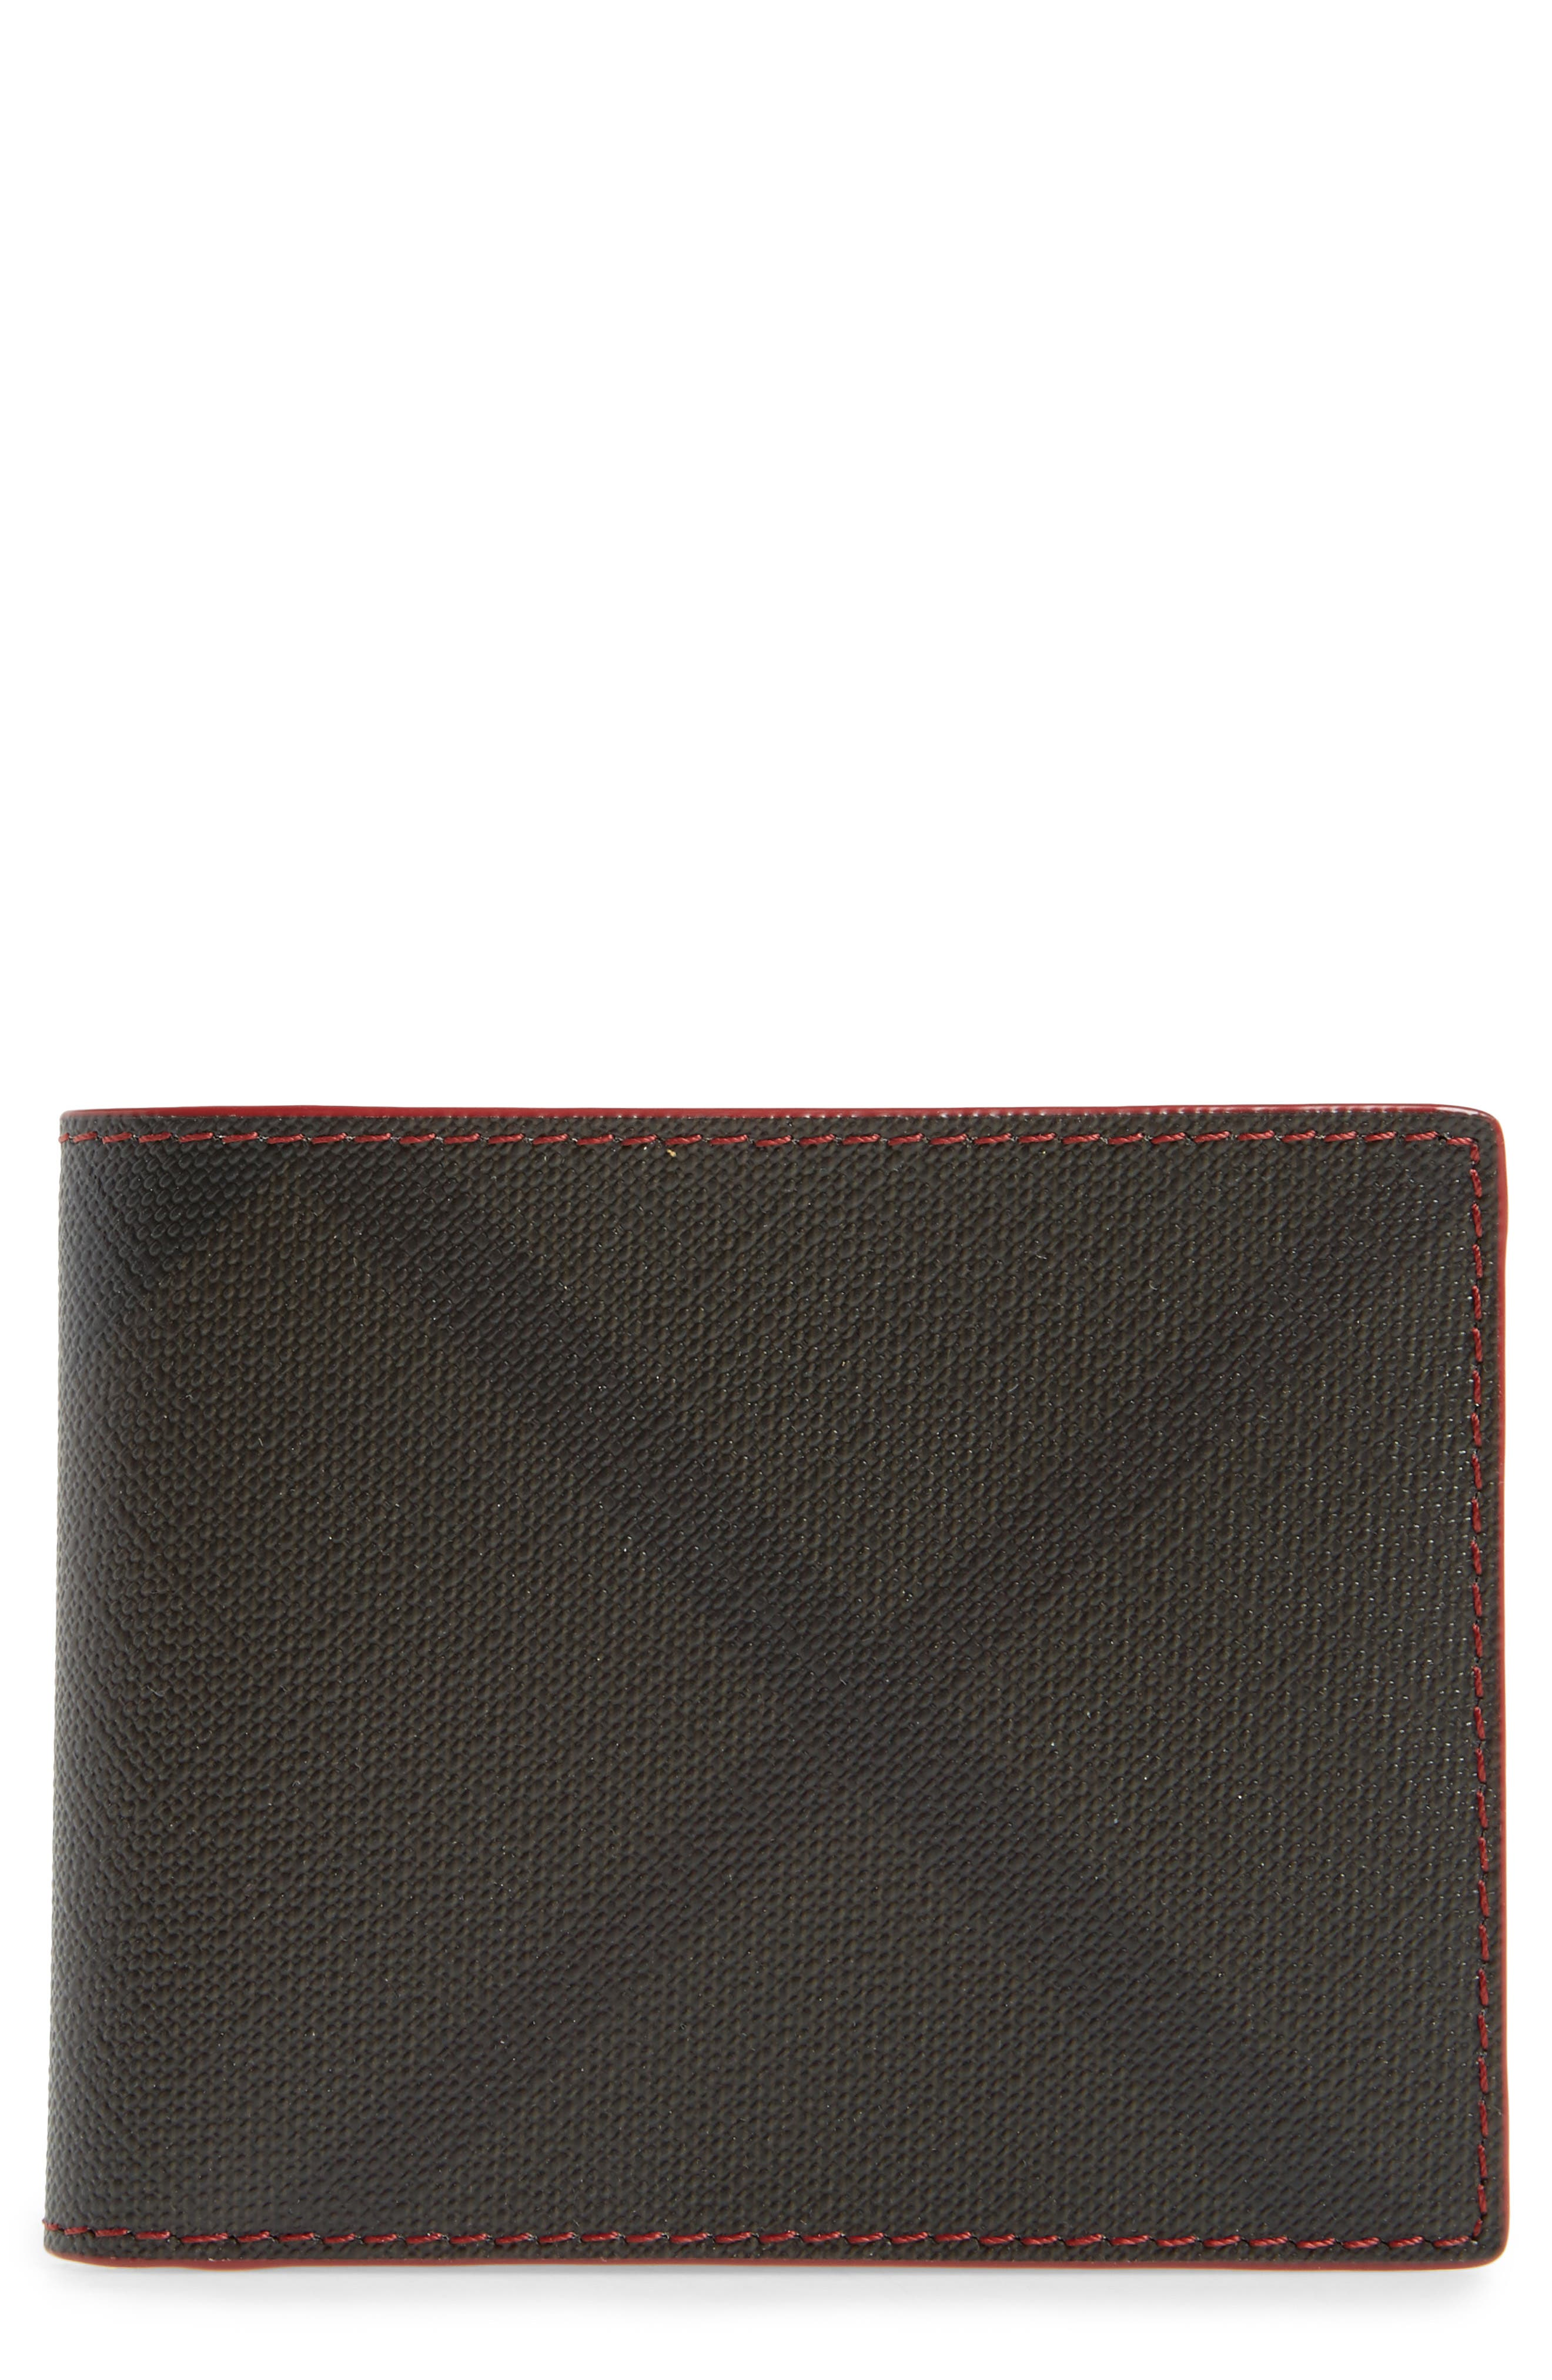 Check Faux Leather Wallet,                         Main,                         color, 207